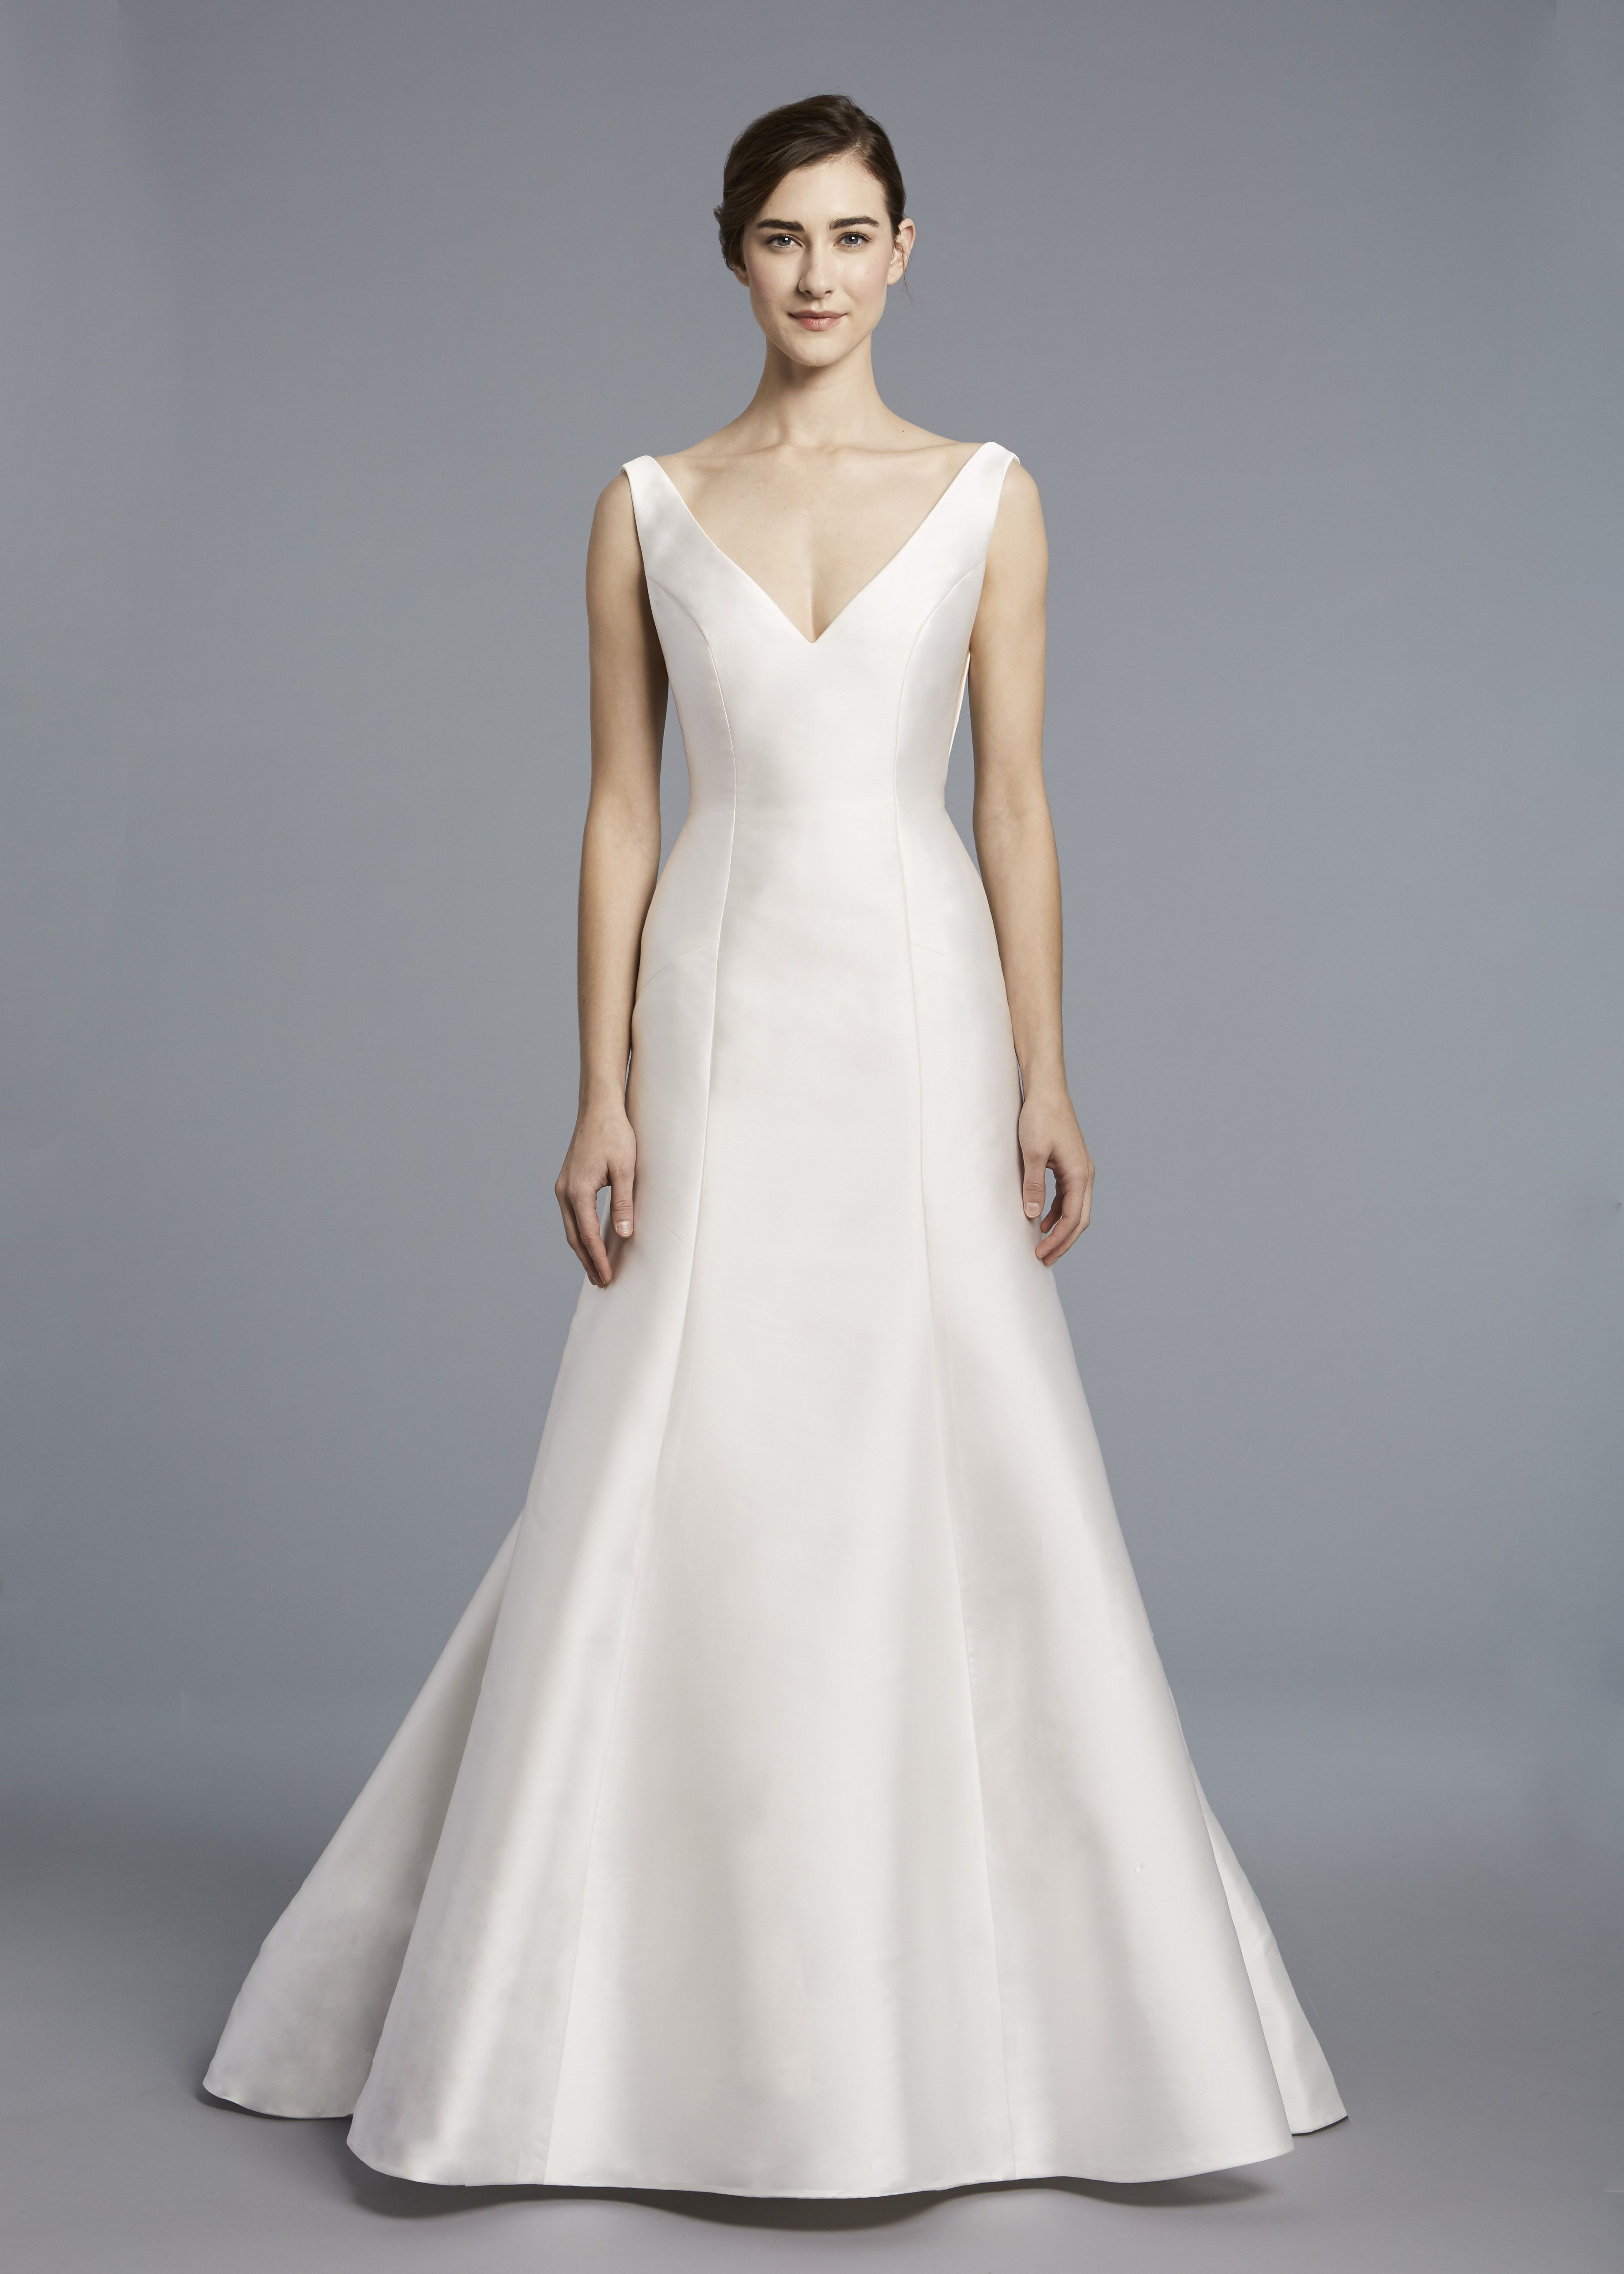 Candice Anne Barge Spring 2018 V Neck Bridal Gown Of Silk Mikado With Architectura Anne Barge Wedding Dresses Wedding Dresses Wedding Dresses With Straps [ 5128 x 3663 Pixel ]